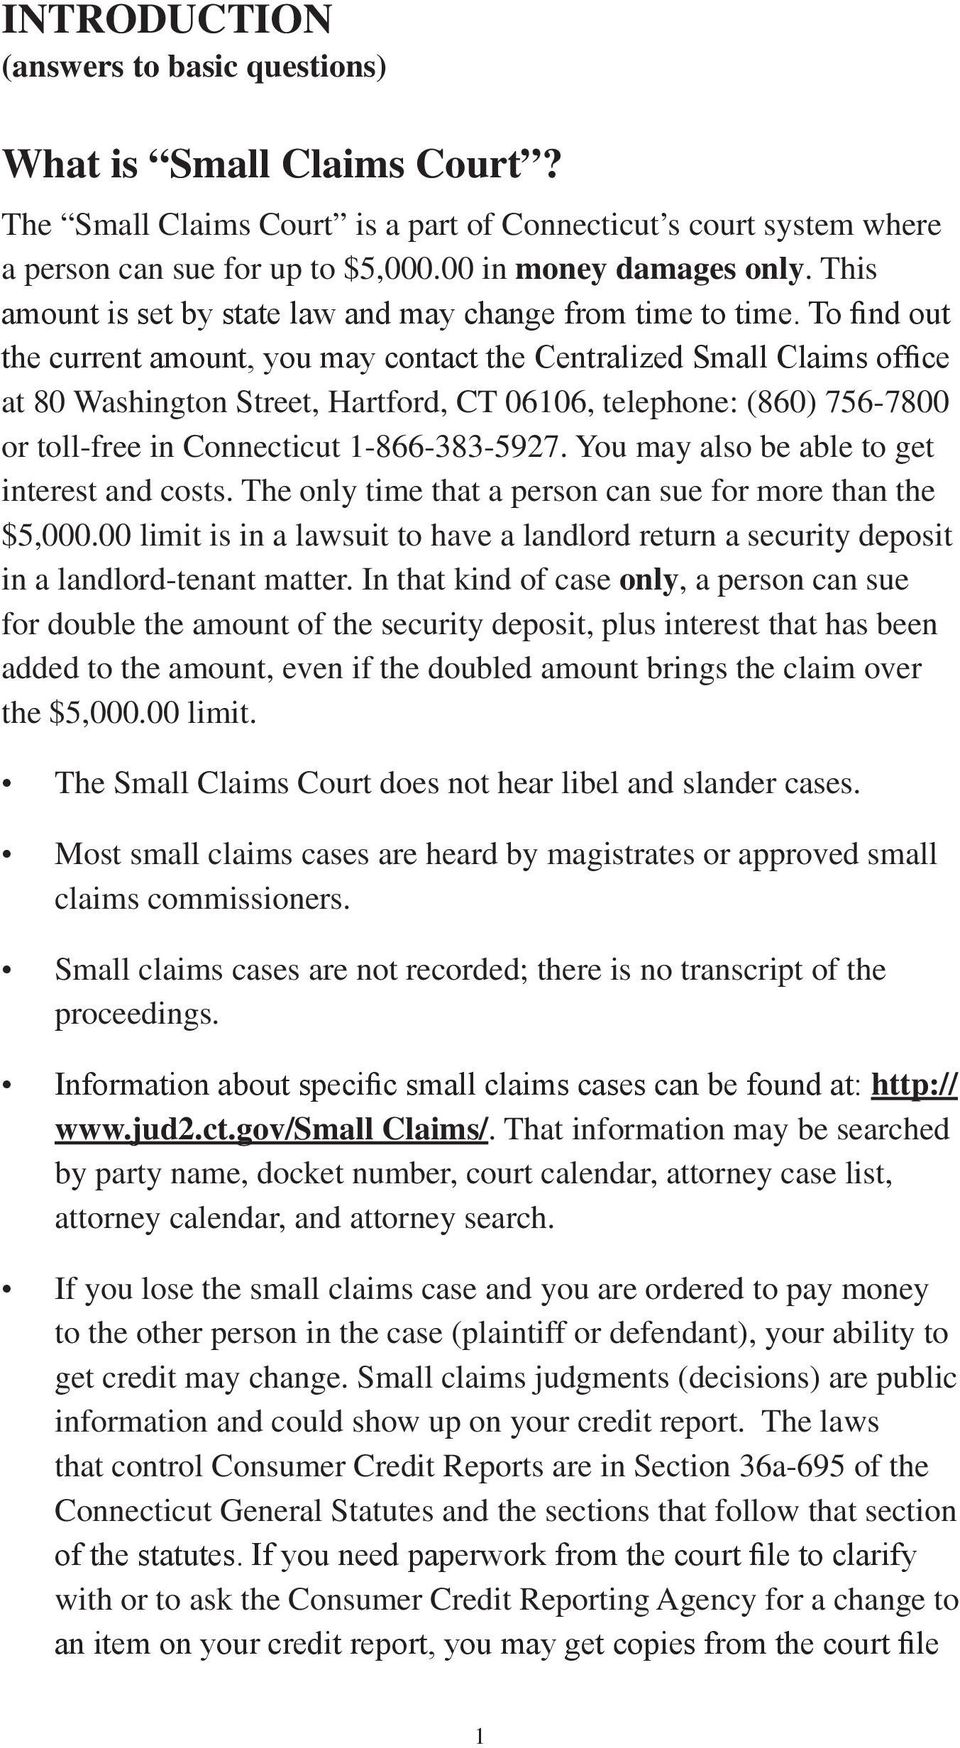 To find out the current amount, you may contact the Centralized Small Claims office at 80 Washington Street, Hartford, CT 06106, telephone: (860) 756-7800 or toll-free in Connecticut 1-866-383-5927.